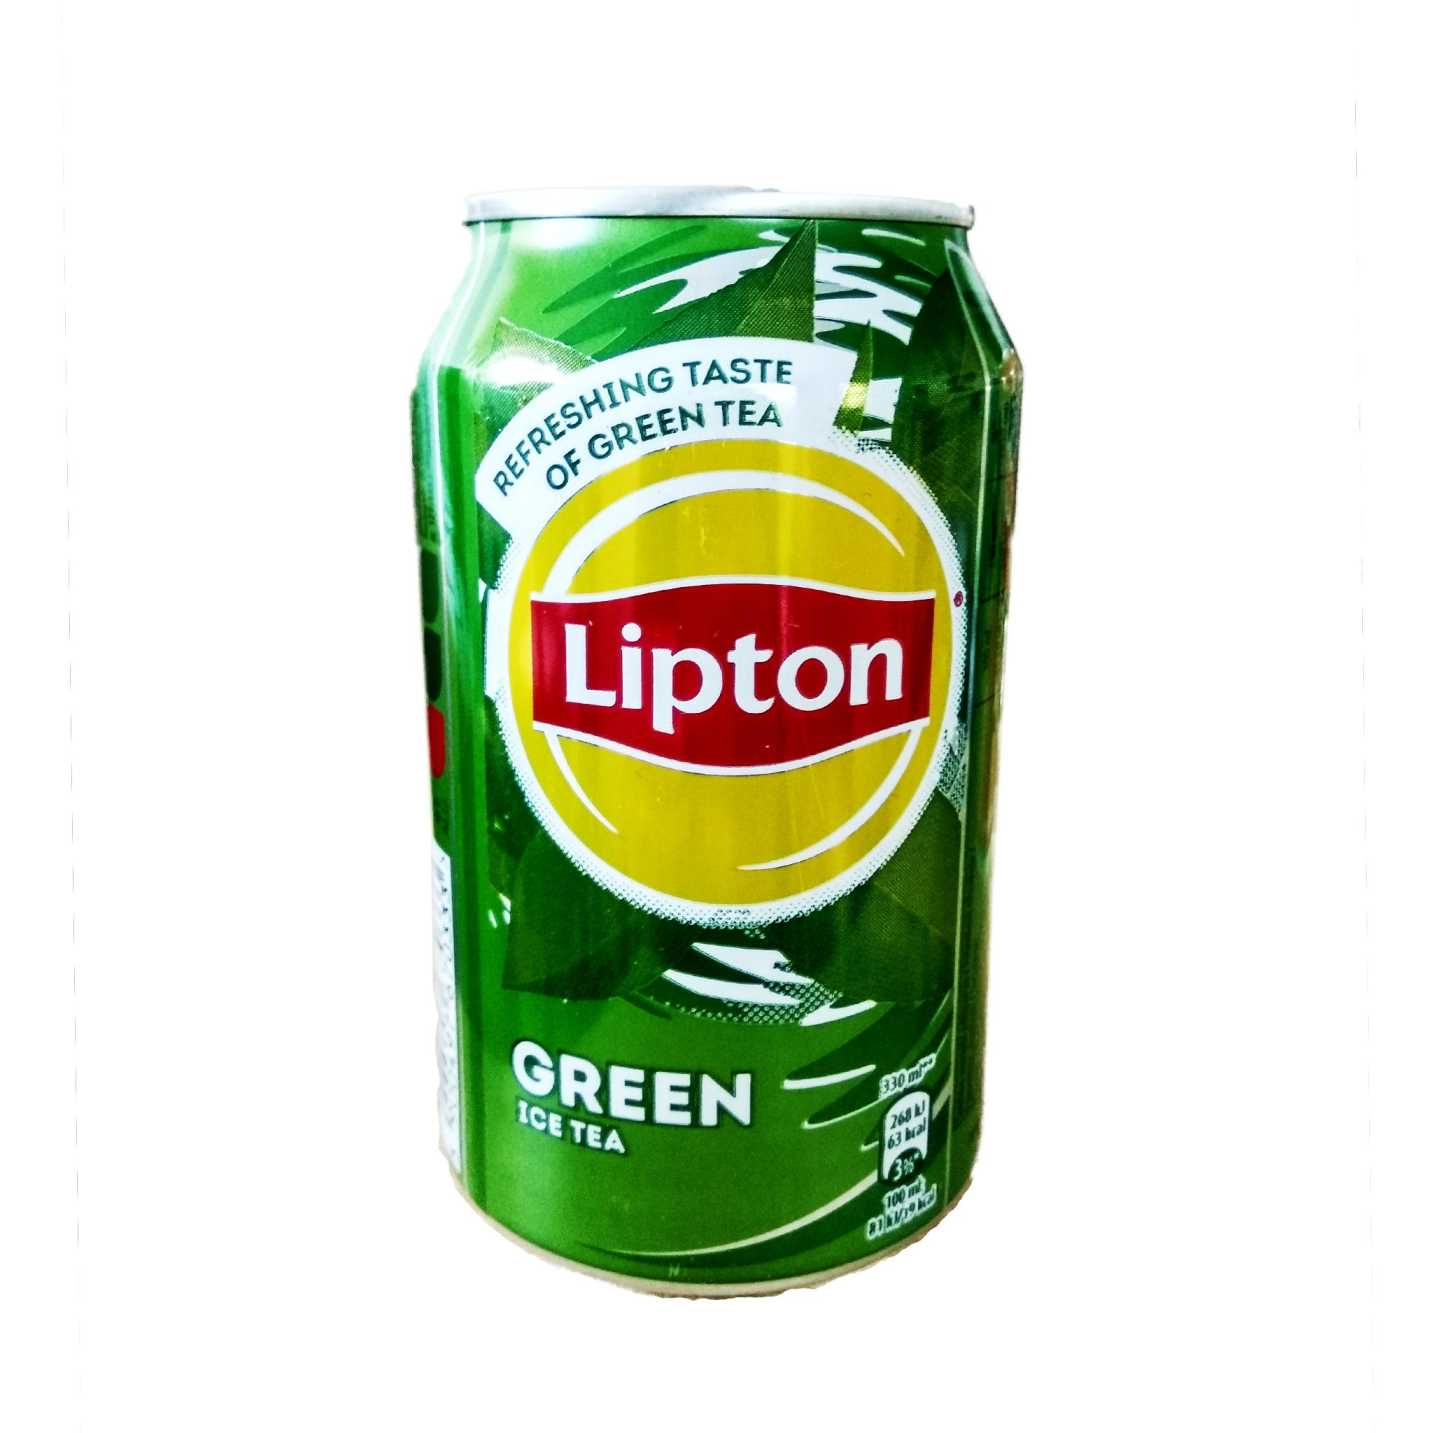 Lipton Tea - Green Tea